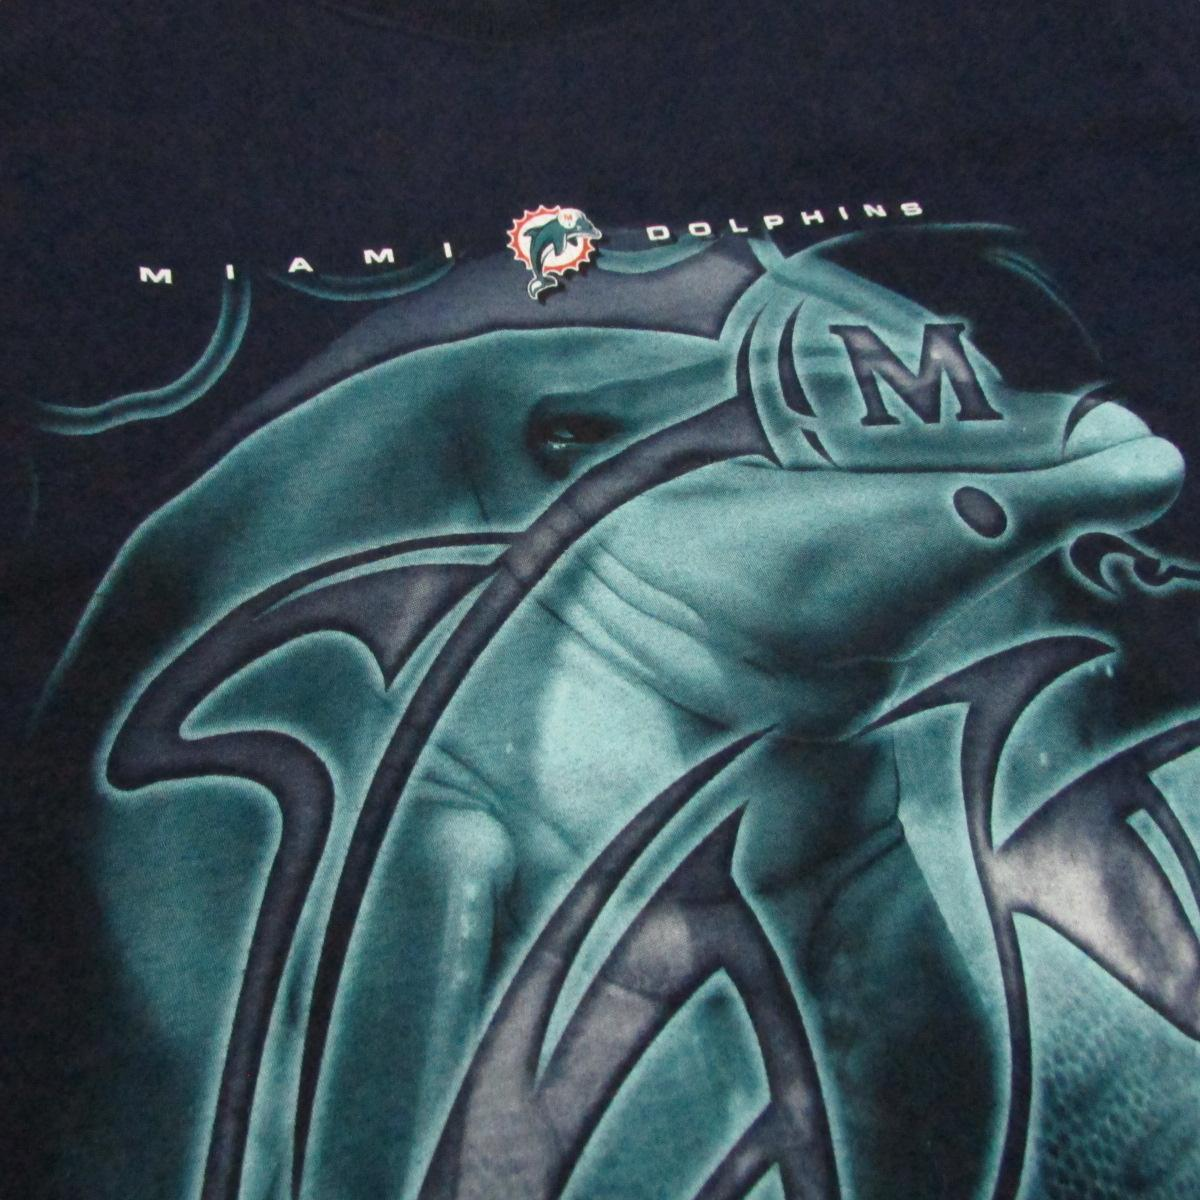 Miami Dolphins Vintage Football T-Shirt Pro Player Sz M